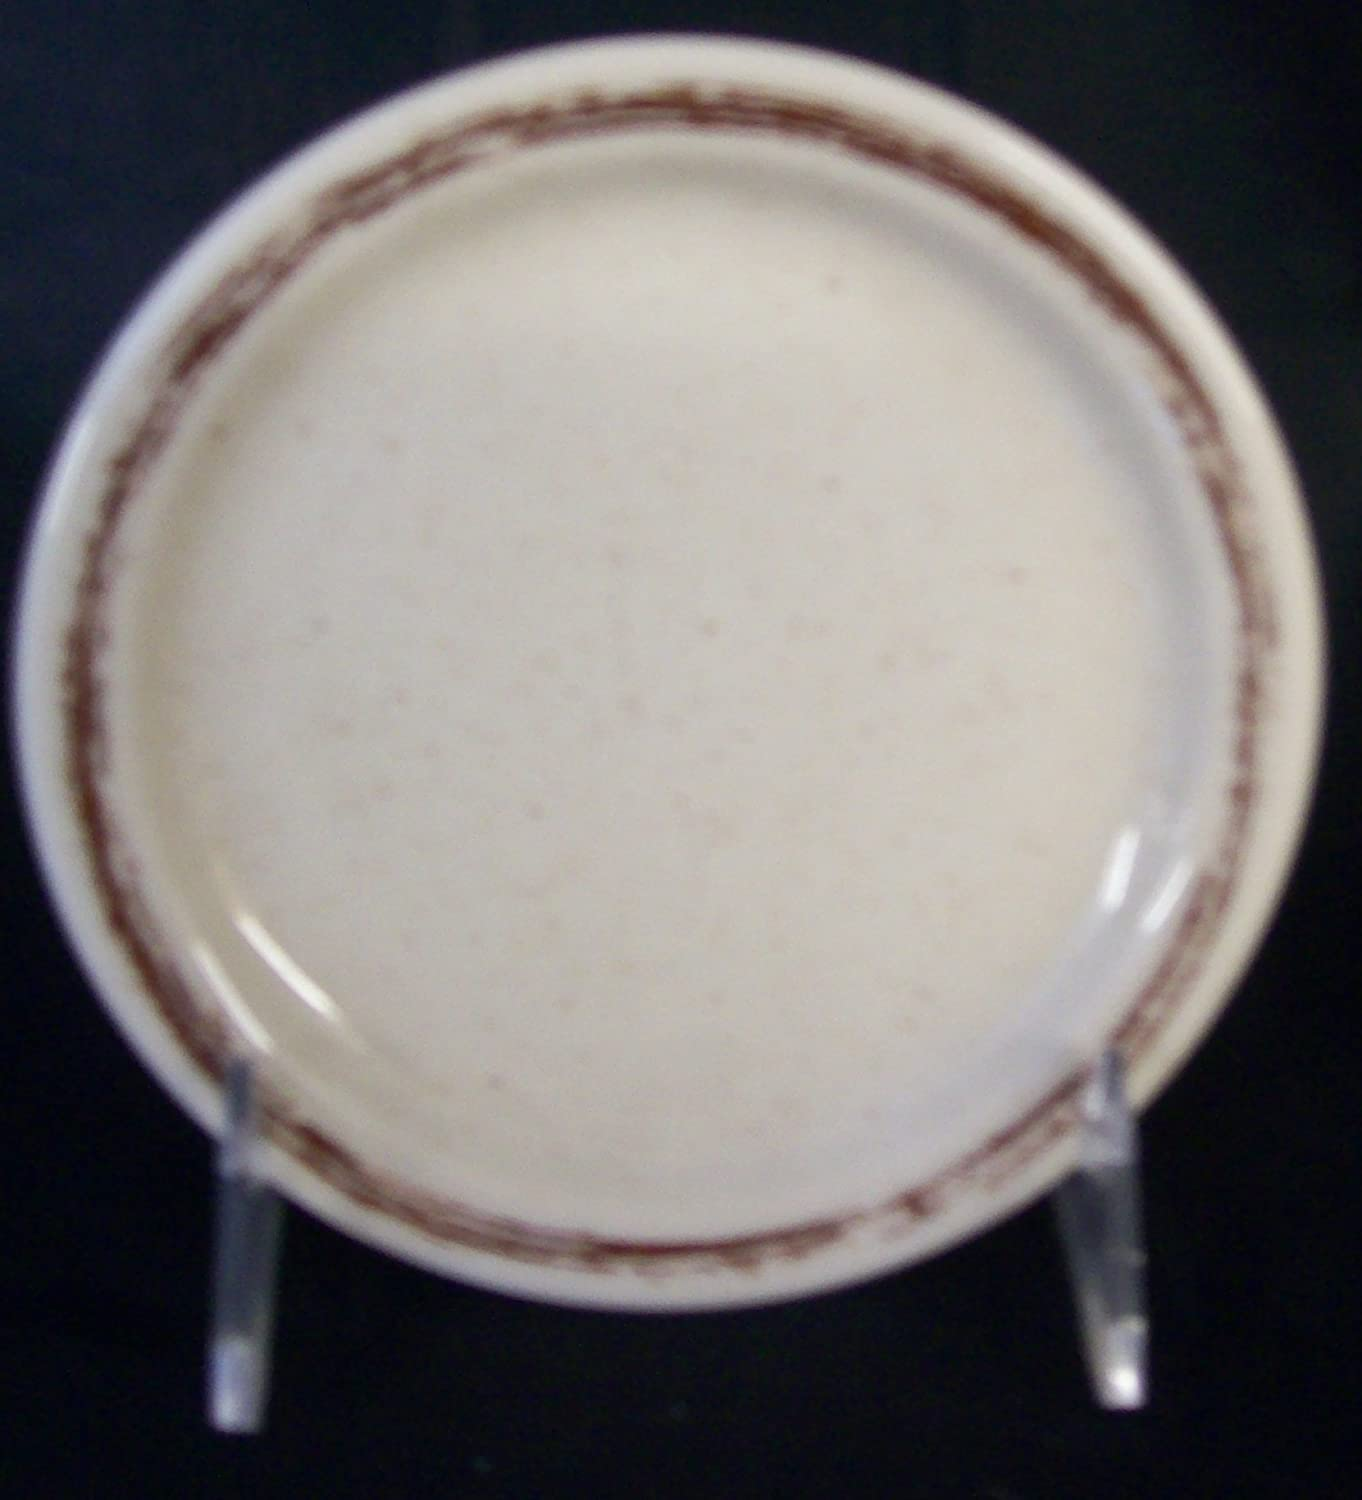 12 Shenango China Saucers Bombing new Outlet ☆ Free Shipping work With Trim Brown